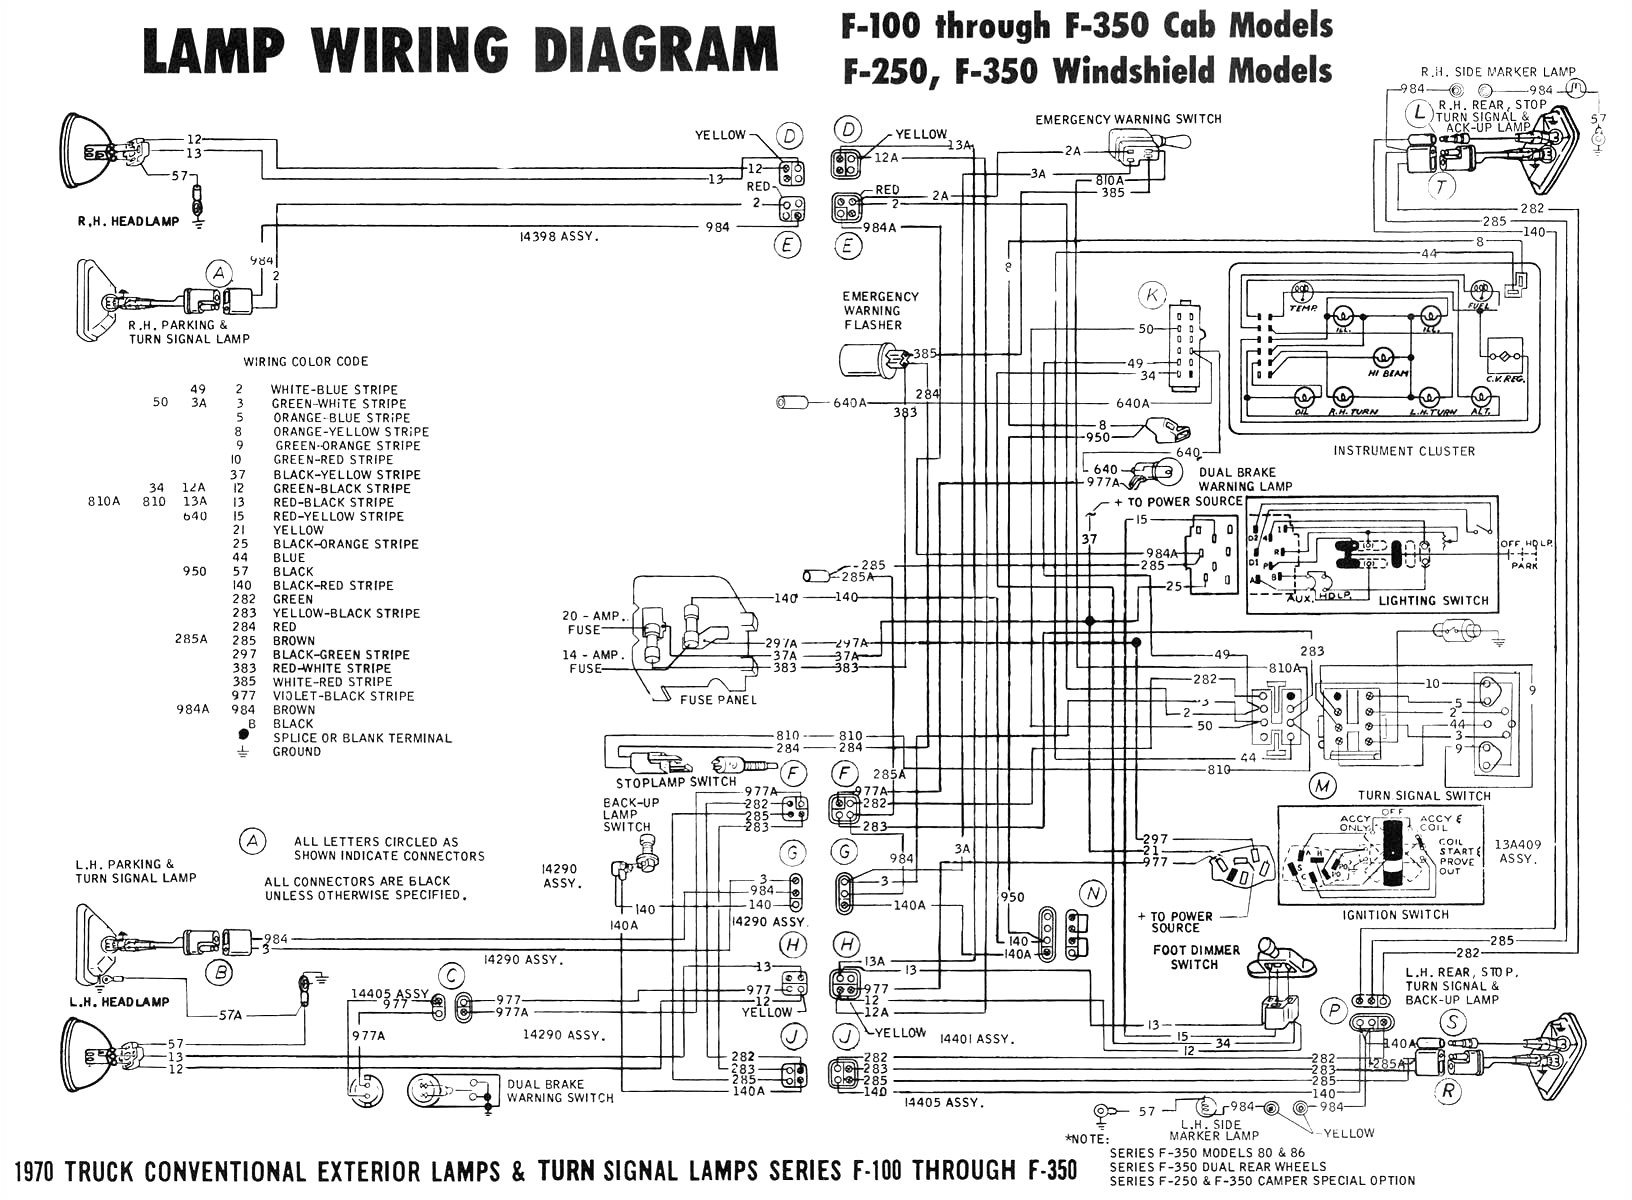 2001 ford Mustang Spark Plug Wiring Diagram Chevy Steering Column Diagram Spark Plugs Location Diagram 2006 ford